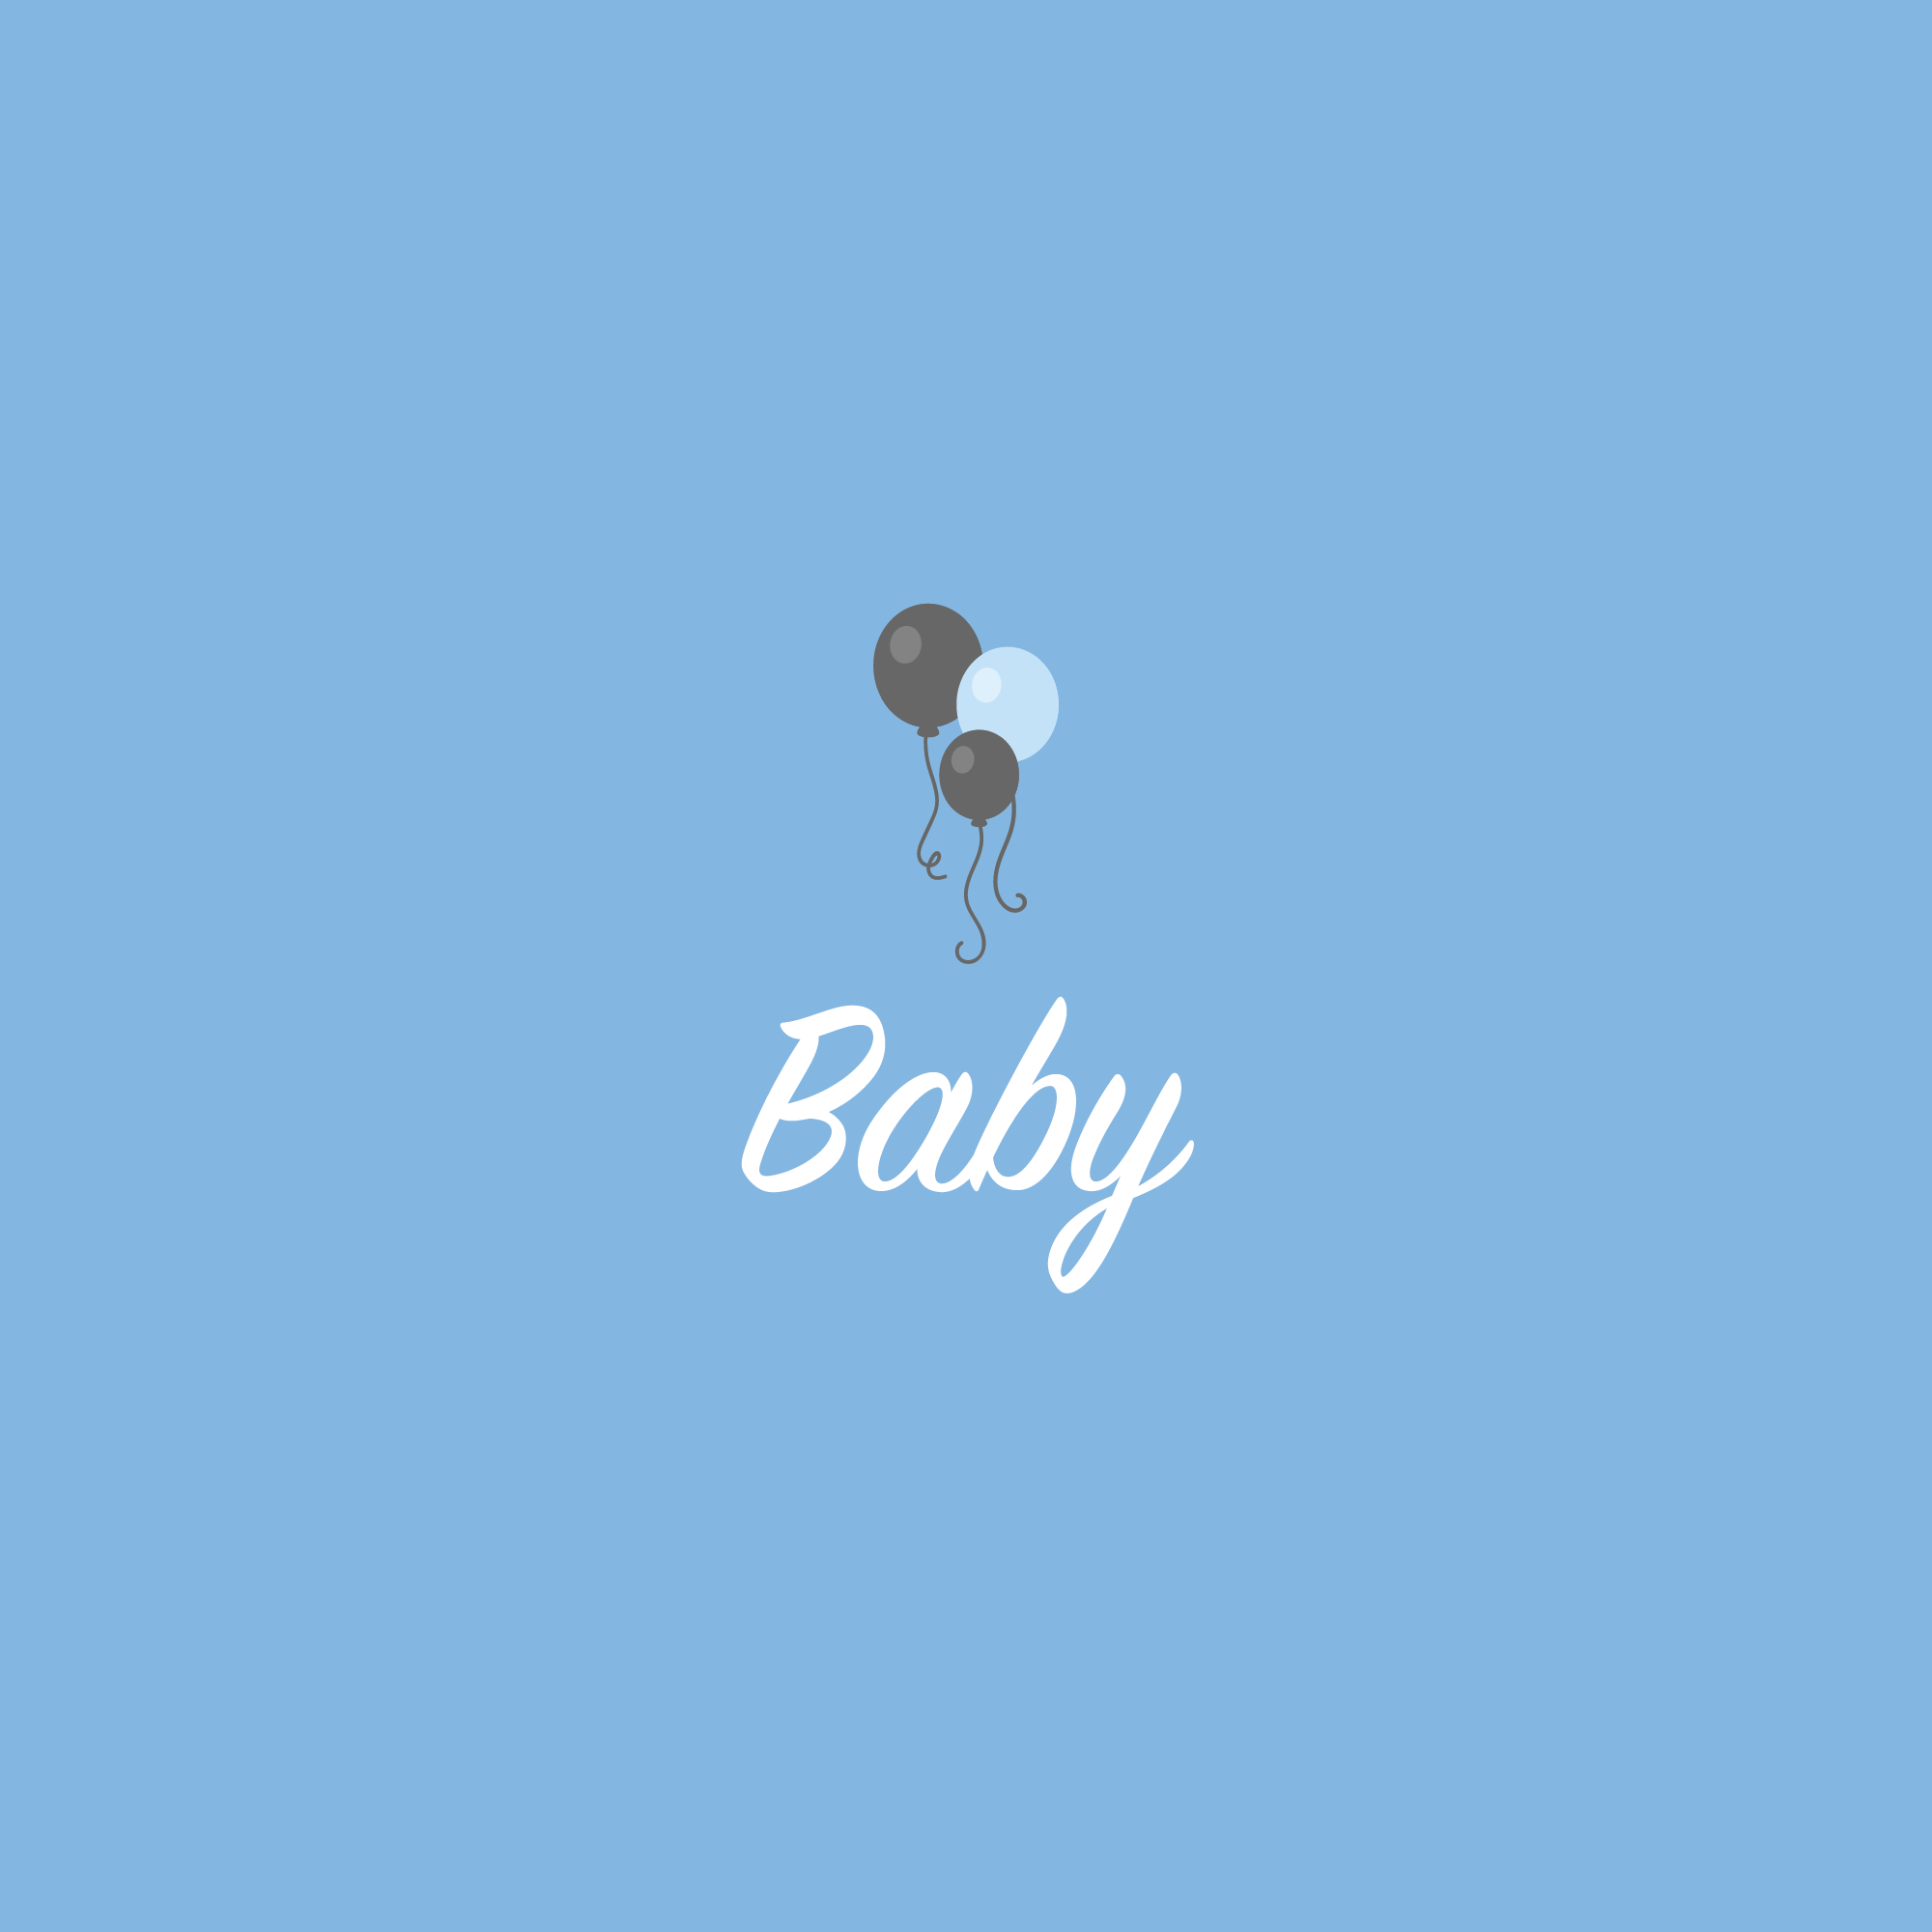 Instagram Story Cover - Baby Image